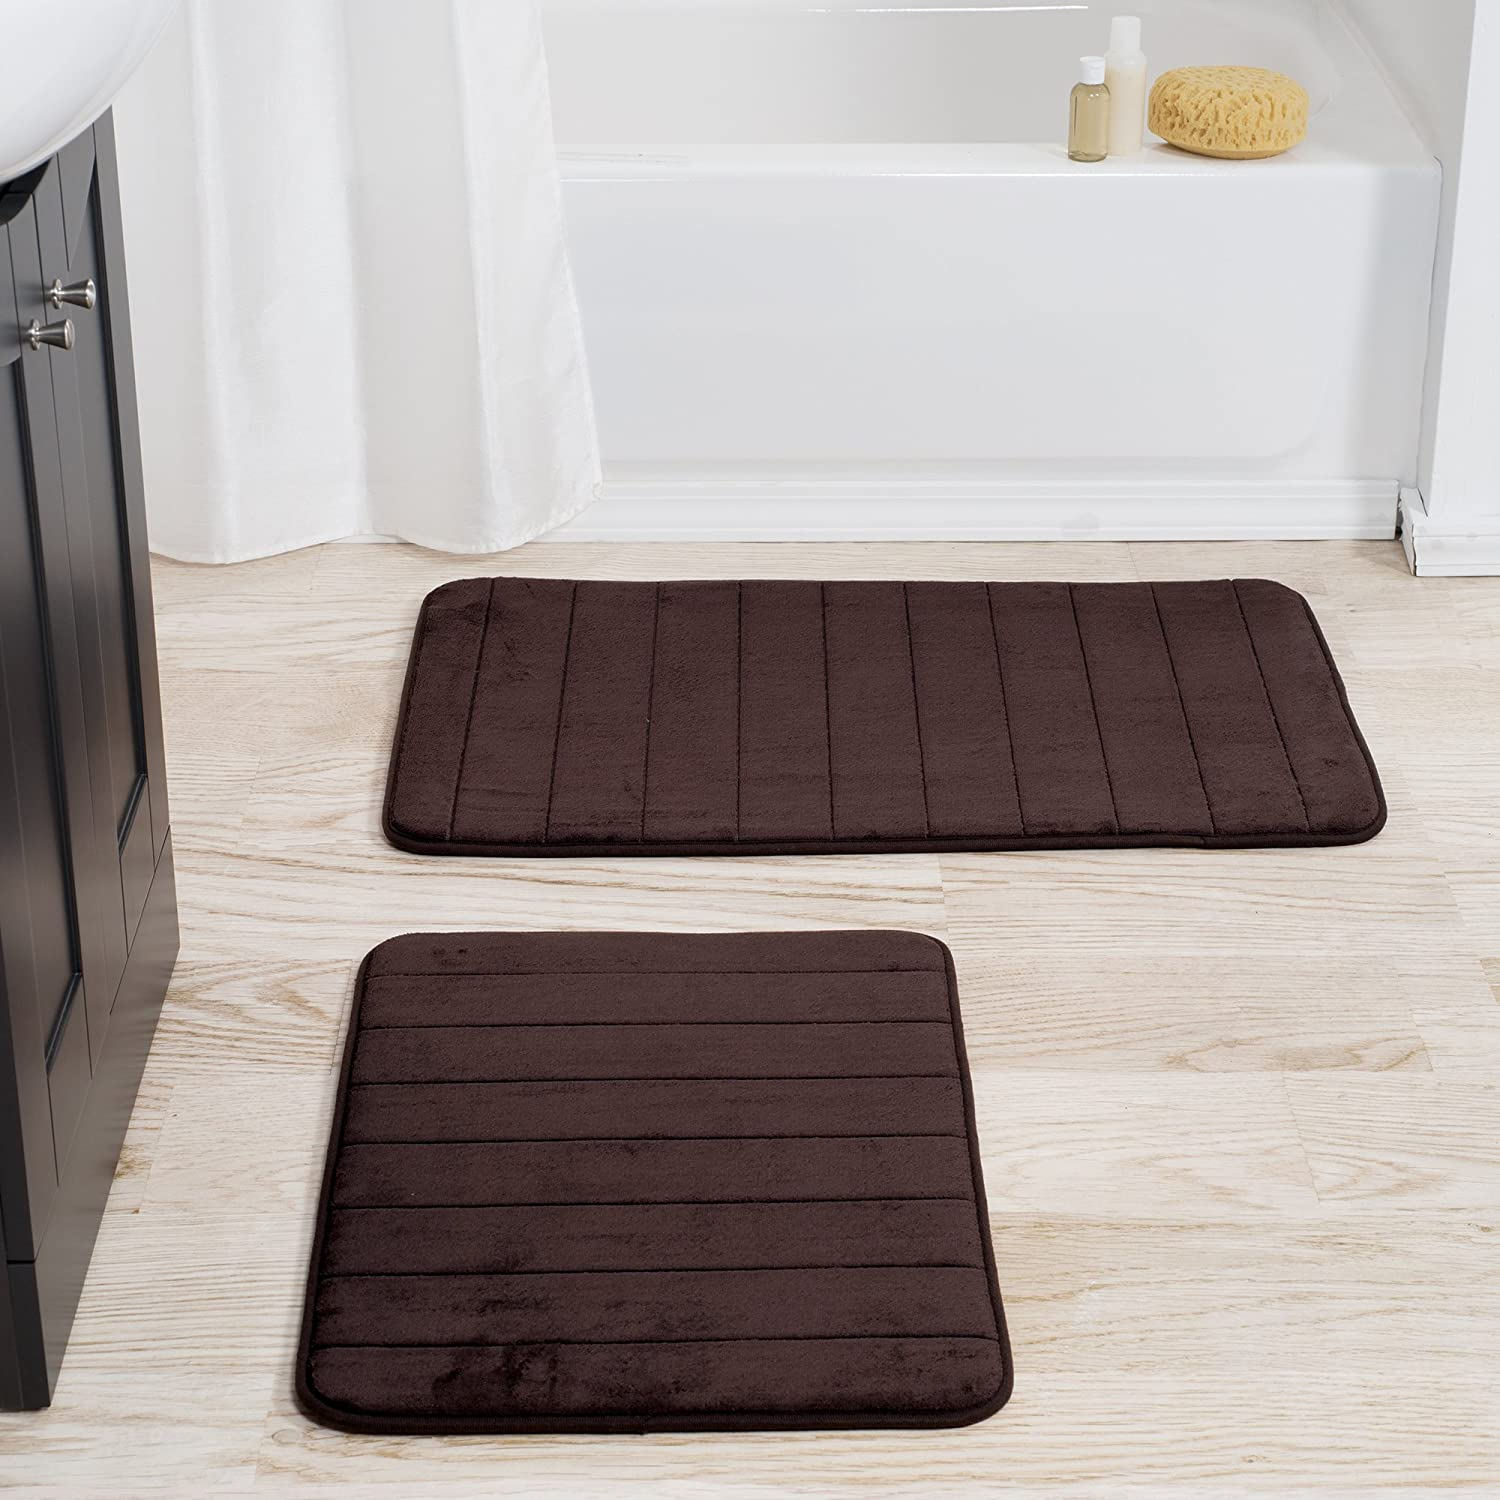 Bedford Home 2 Piece Memory Foam Striped Bath Mat, Chocolate